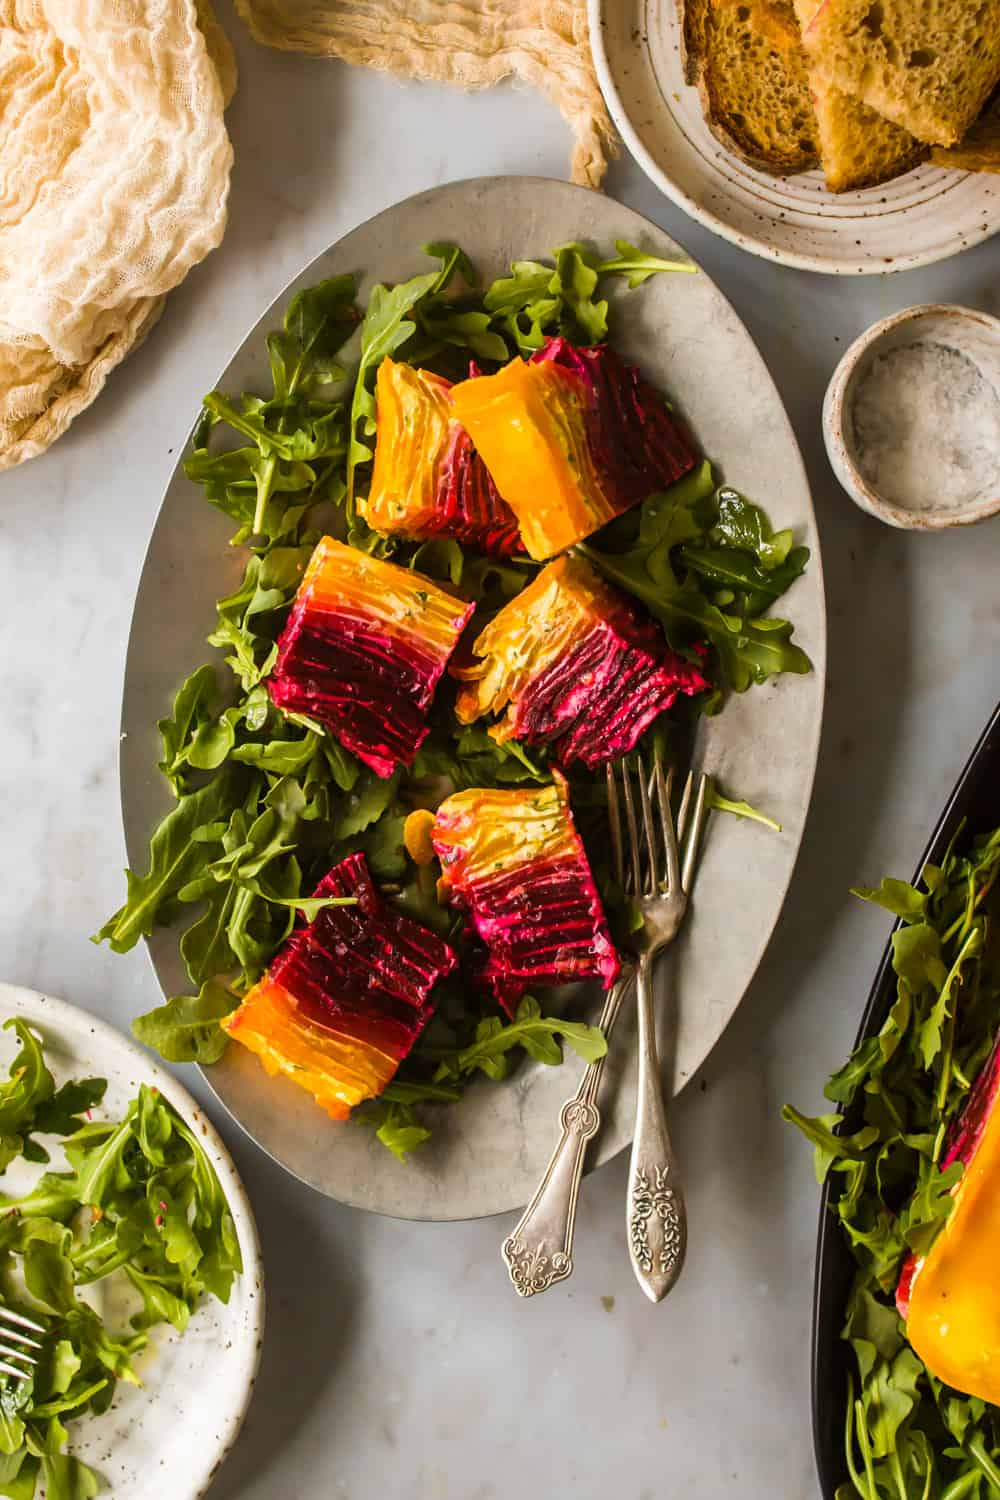 Slices of red and yellow beet terrine on top of arugula on a grey serving plate